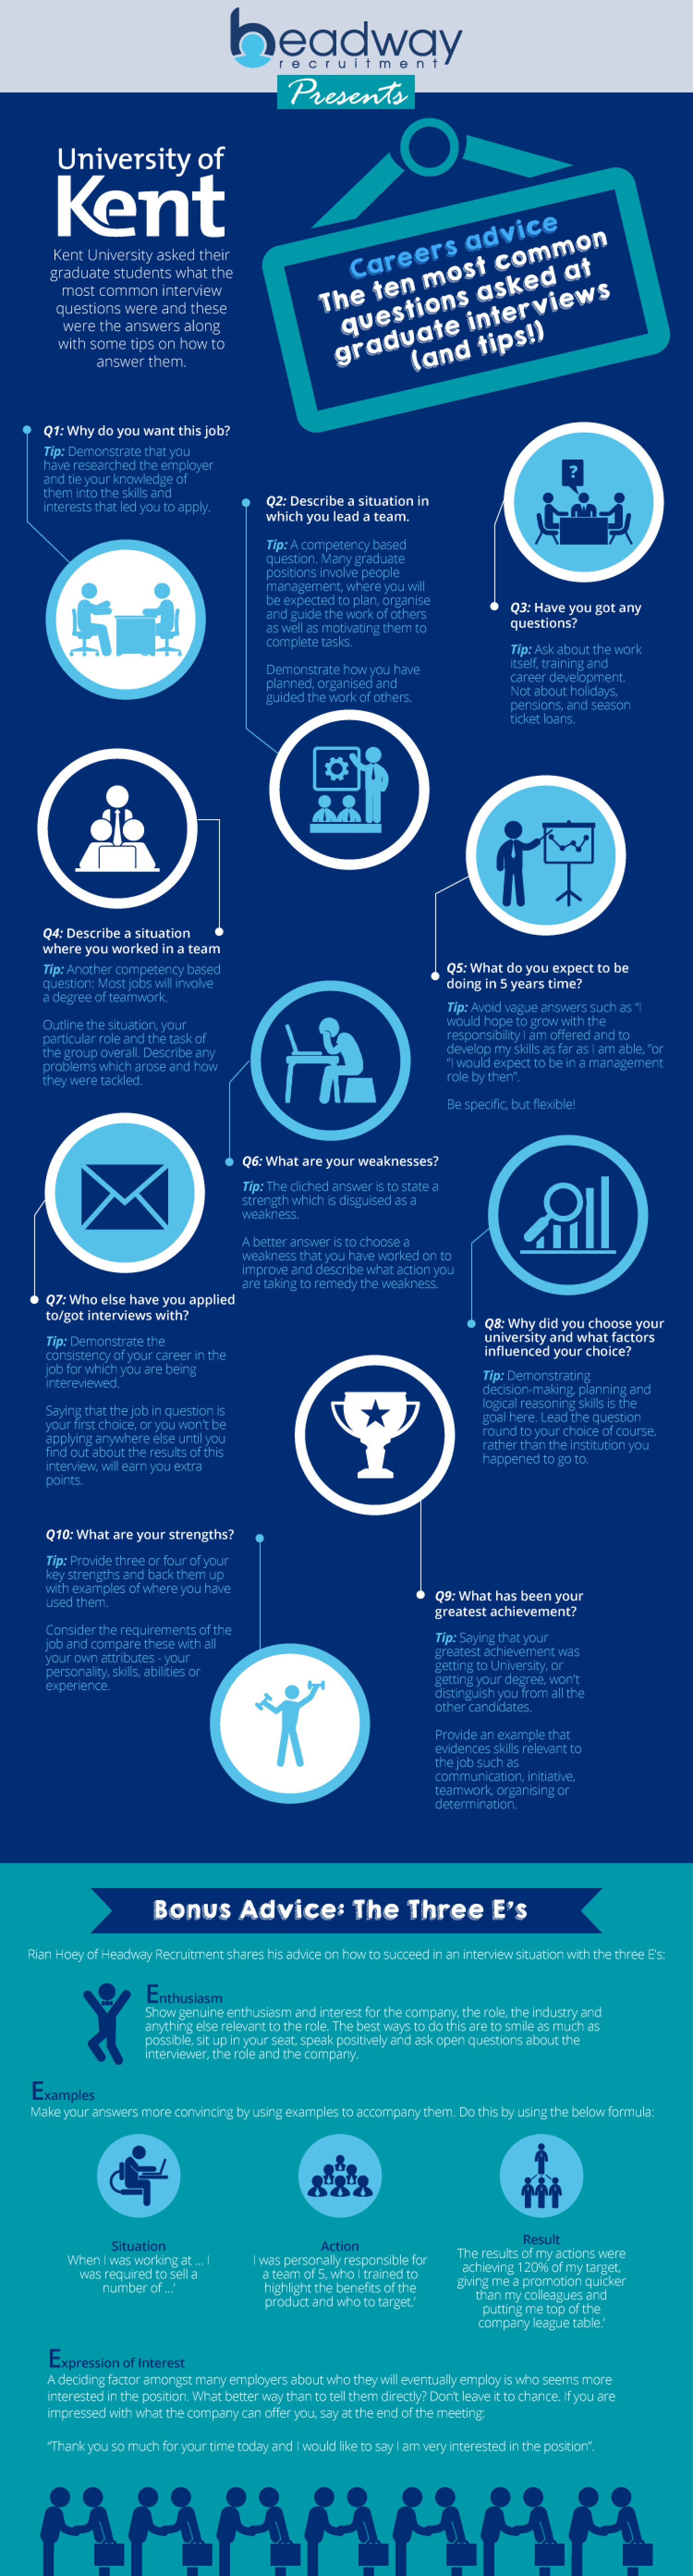 Top 10 Graduate Interview Questions Infographic